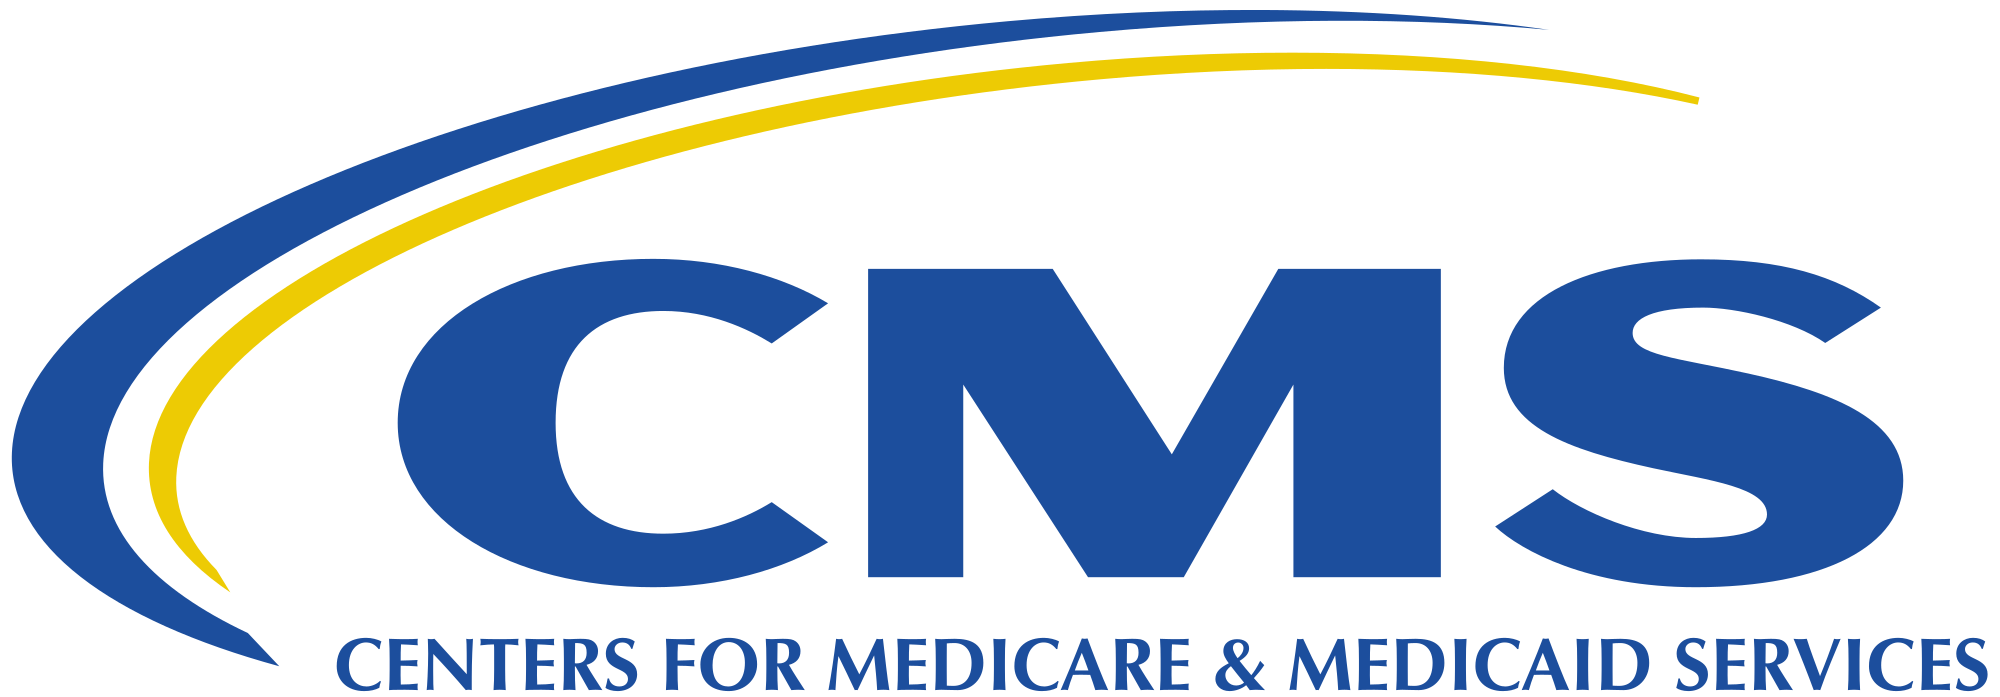 CMS image.png